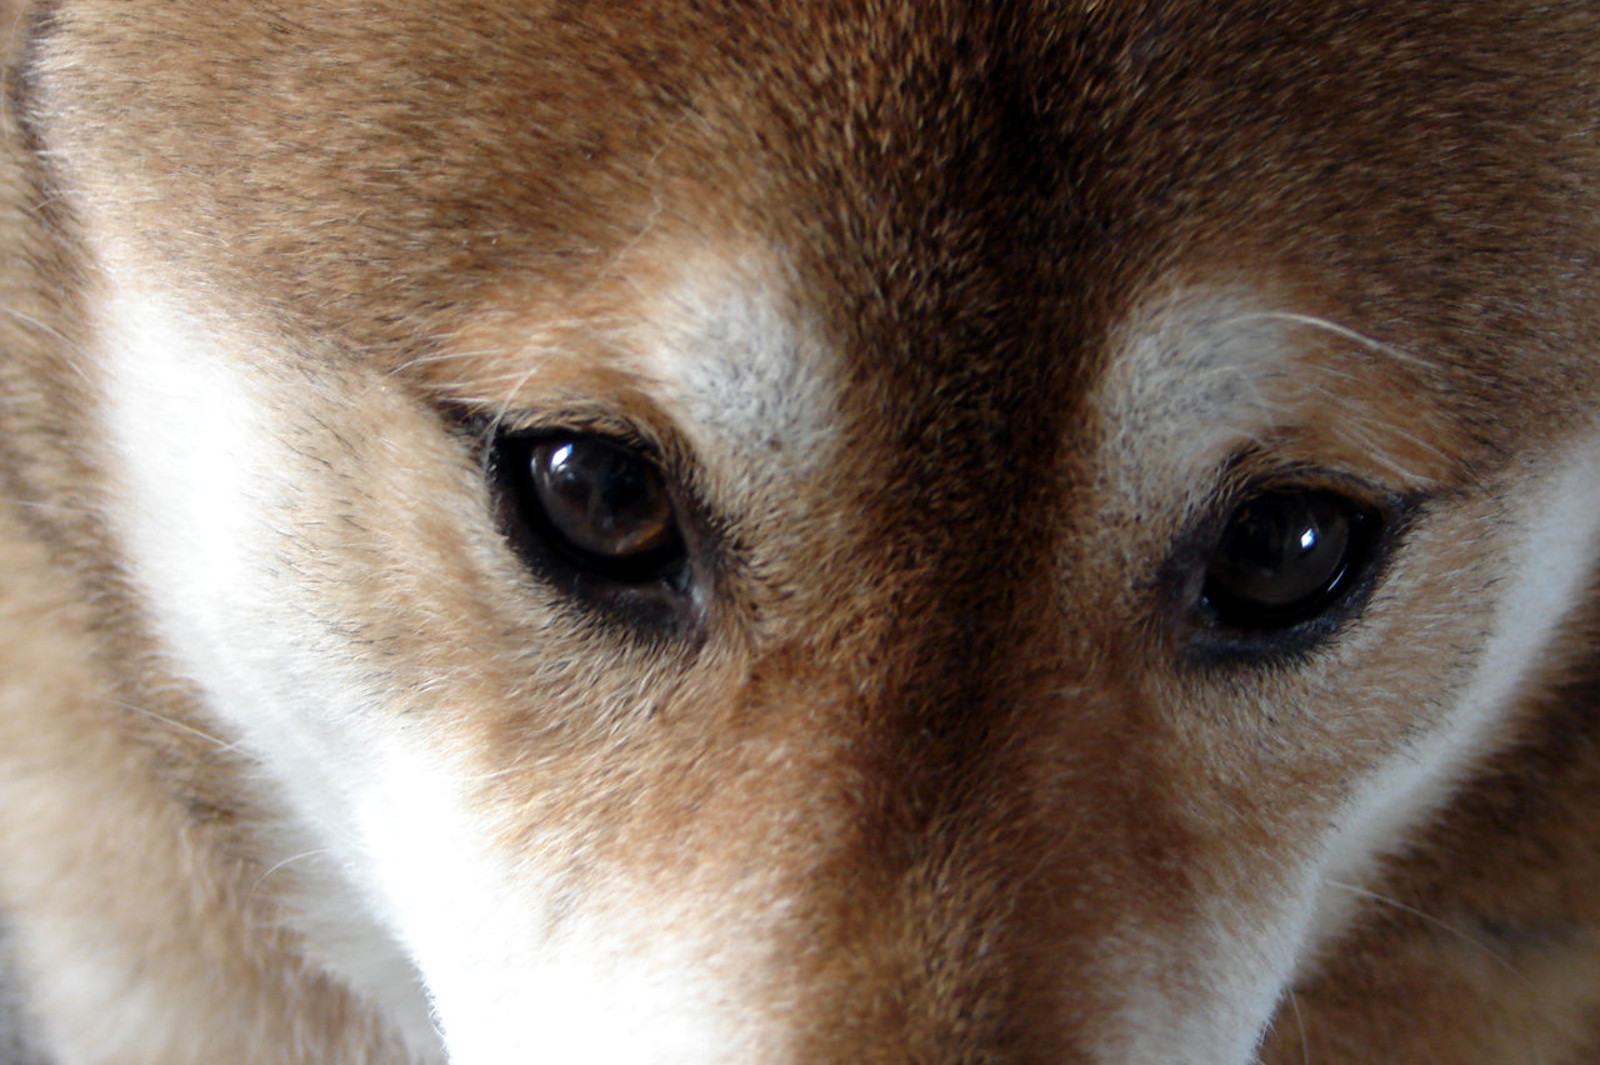 Amidst All the Cruelty of the Dog and Cat Meat Trade, There is Reason for Hope